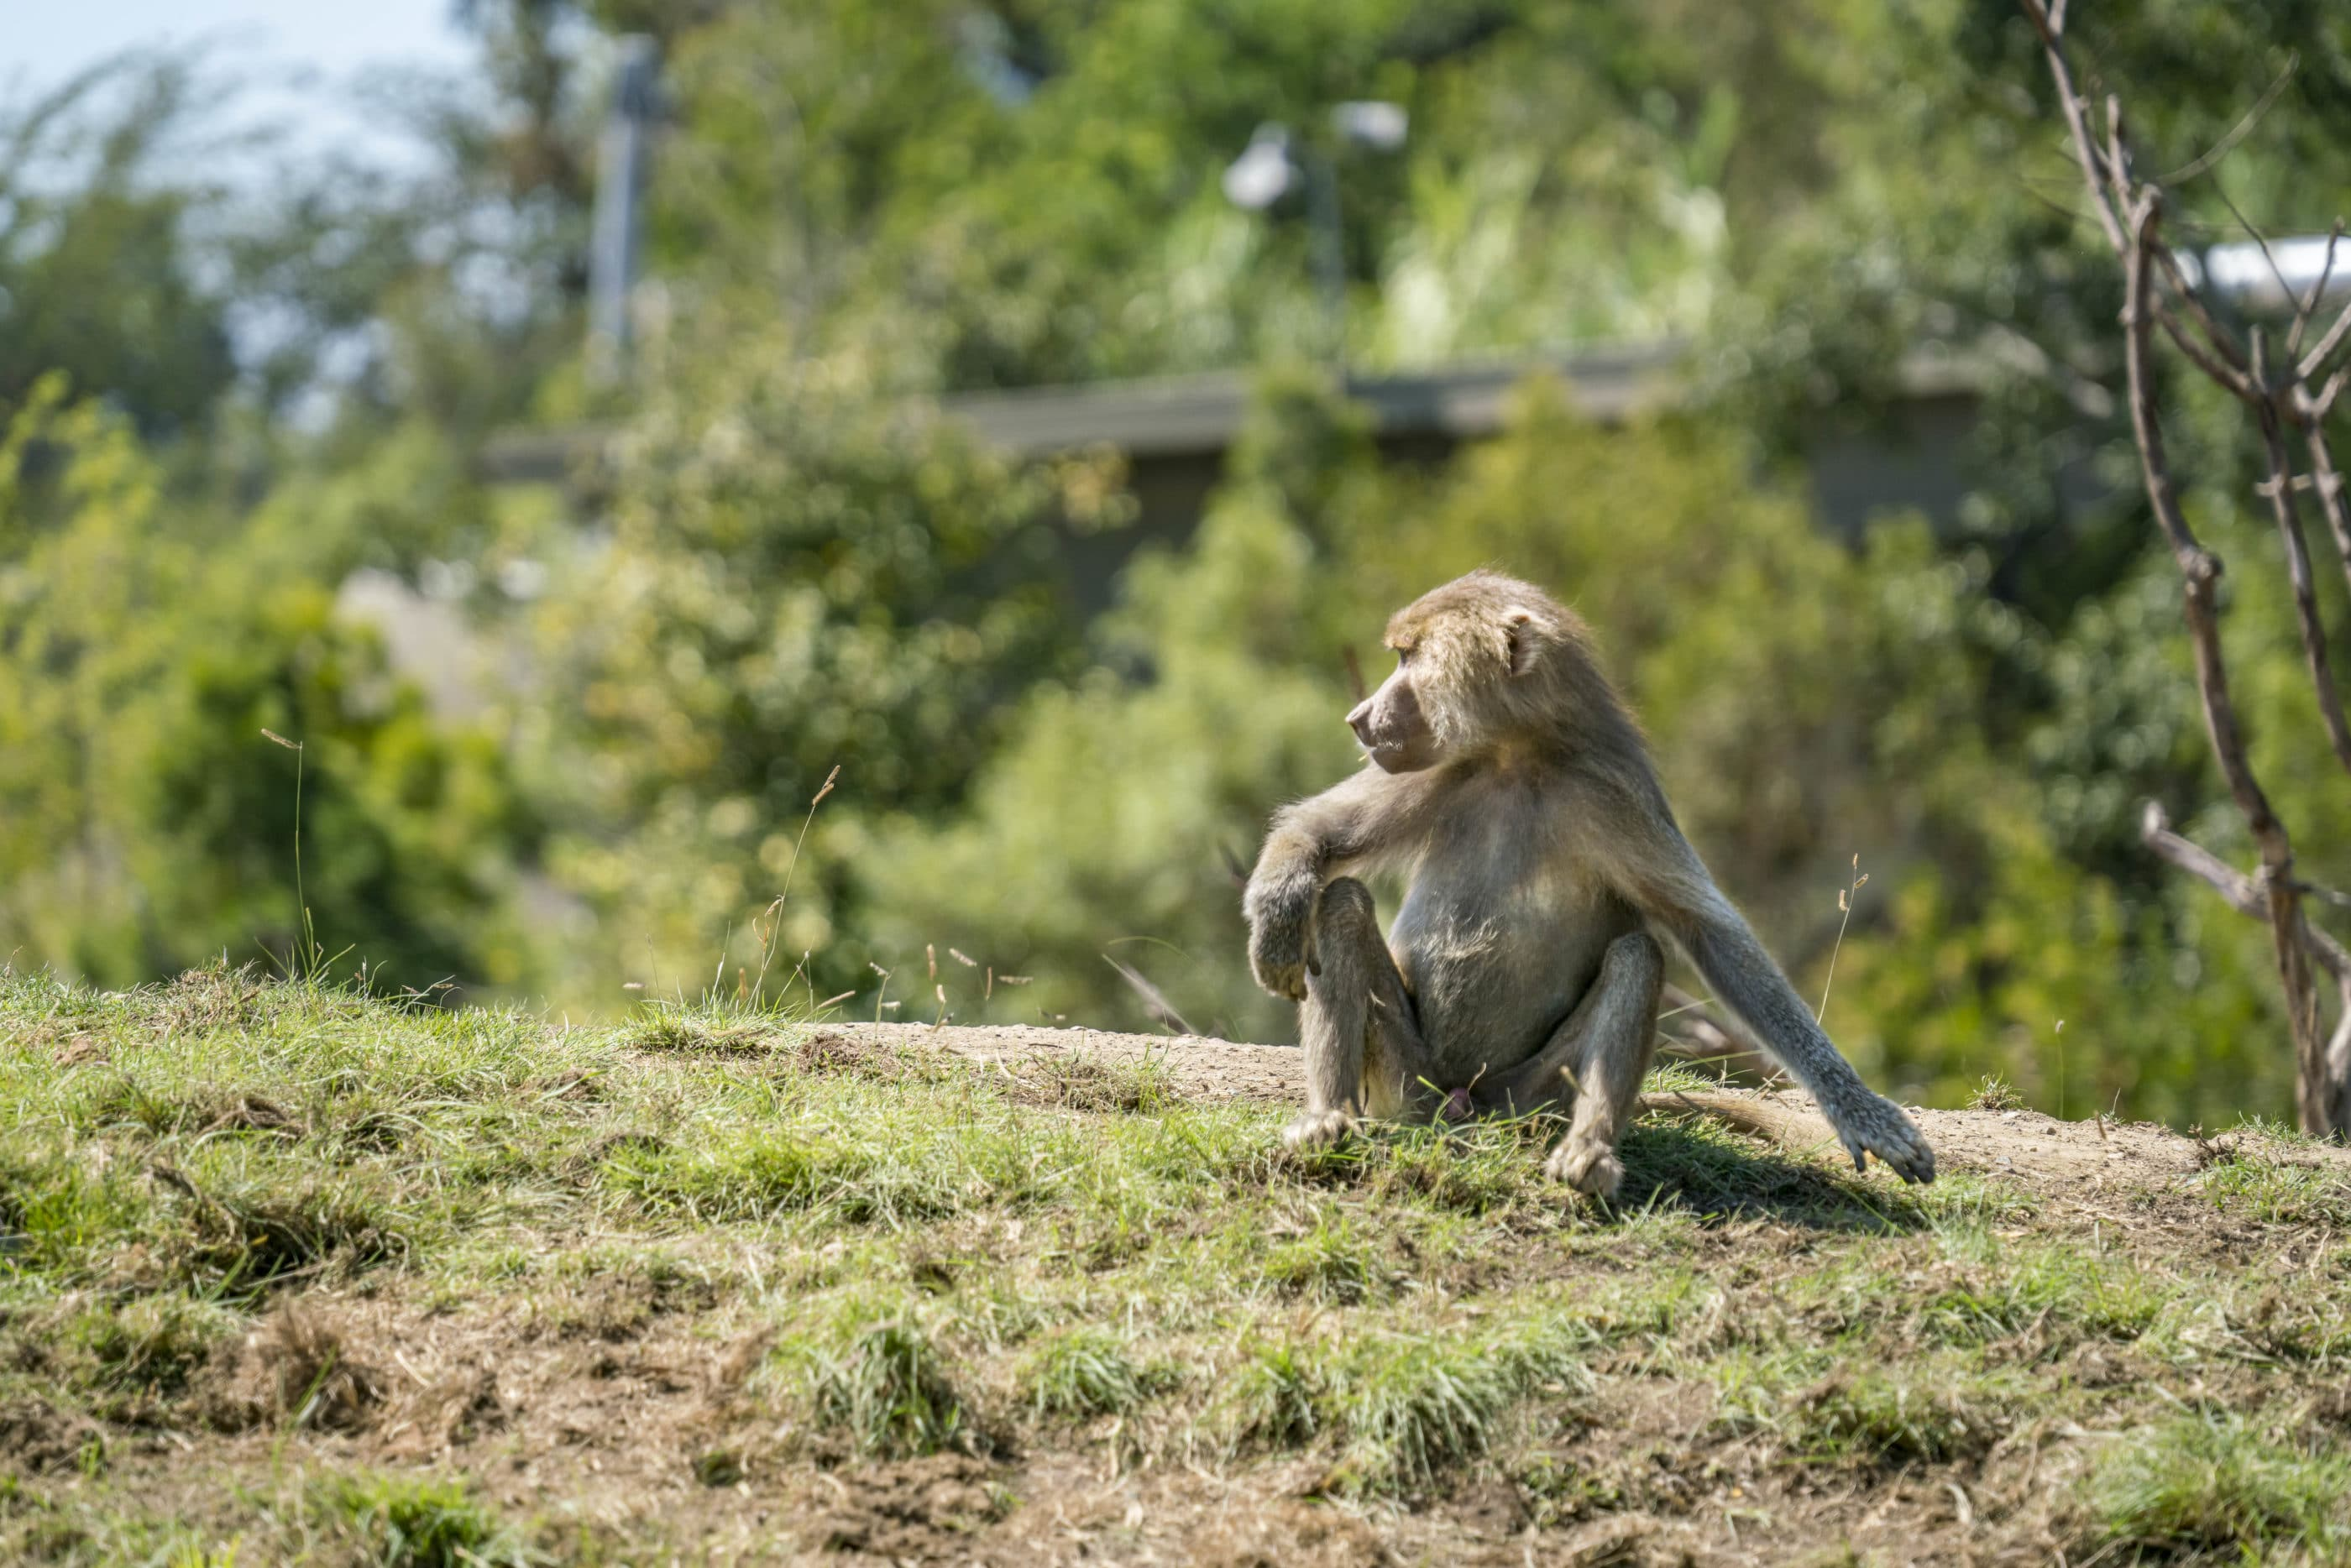 A baboon chills on the grass in the Africa Rocks exhibit at San Diego Zoo.